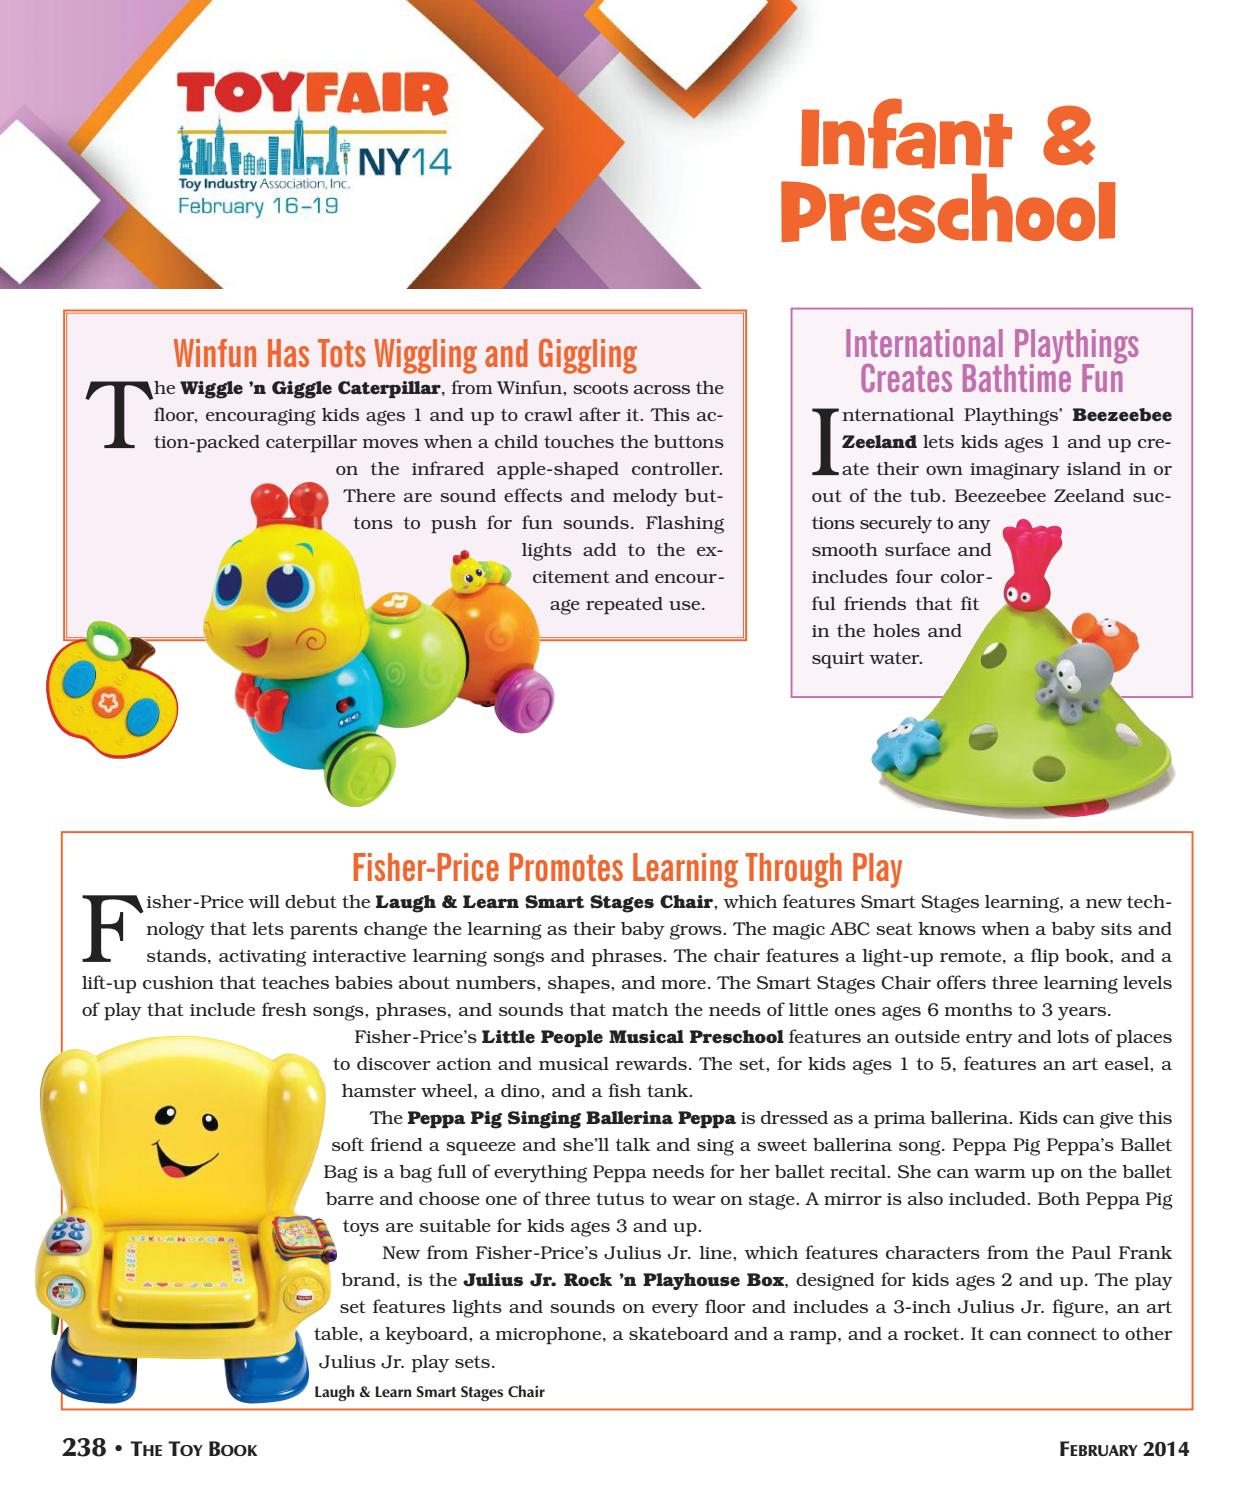 February 2014 by The Toy Book - issuu